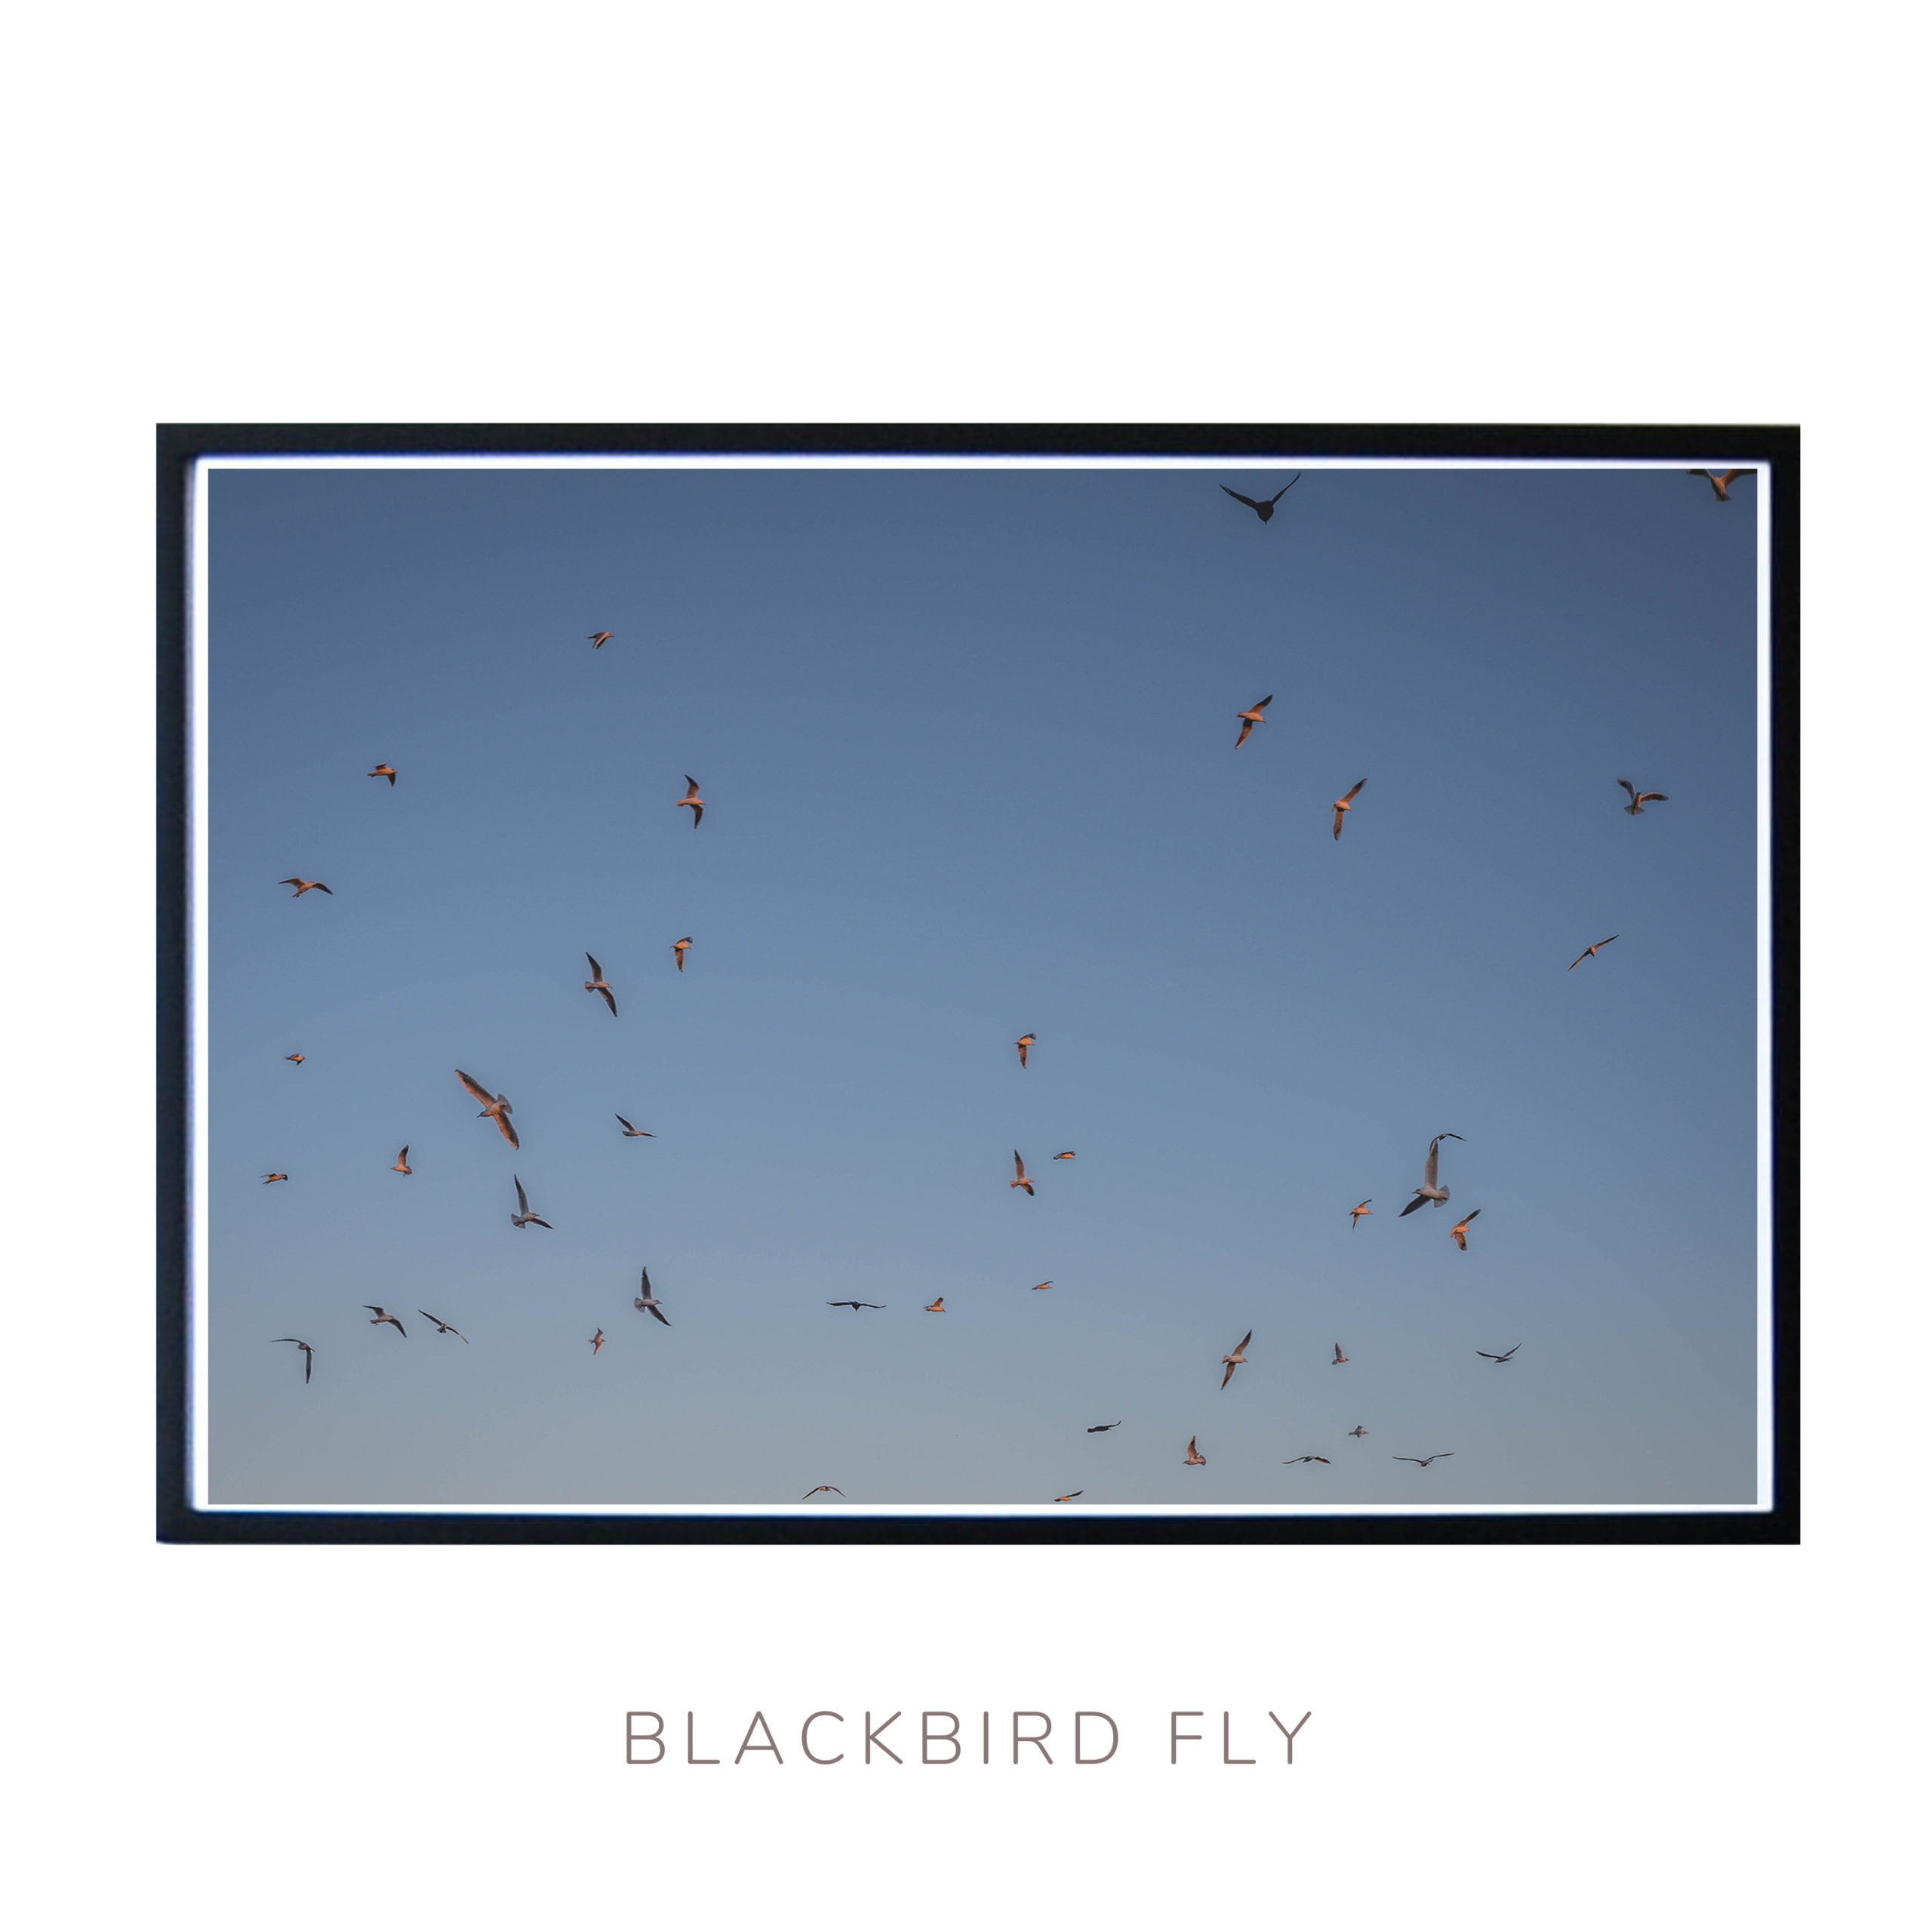 Blackbirds flying on the golden light in Black Heath Fine art wall art